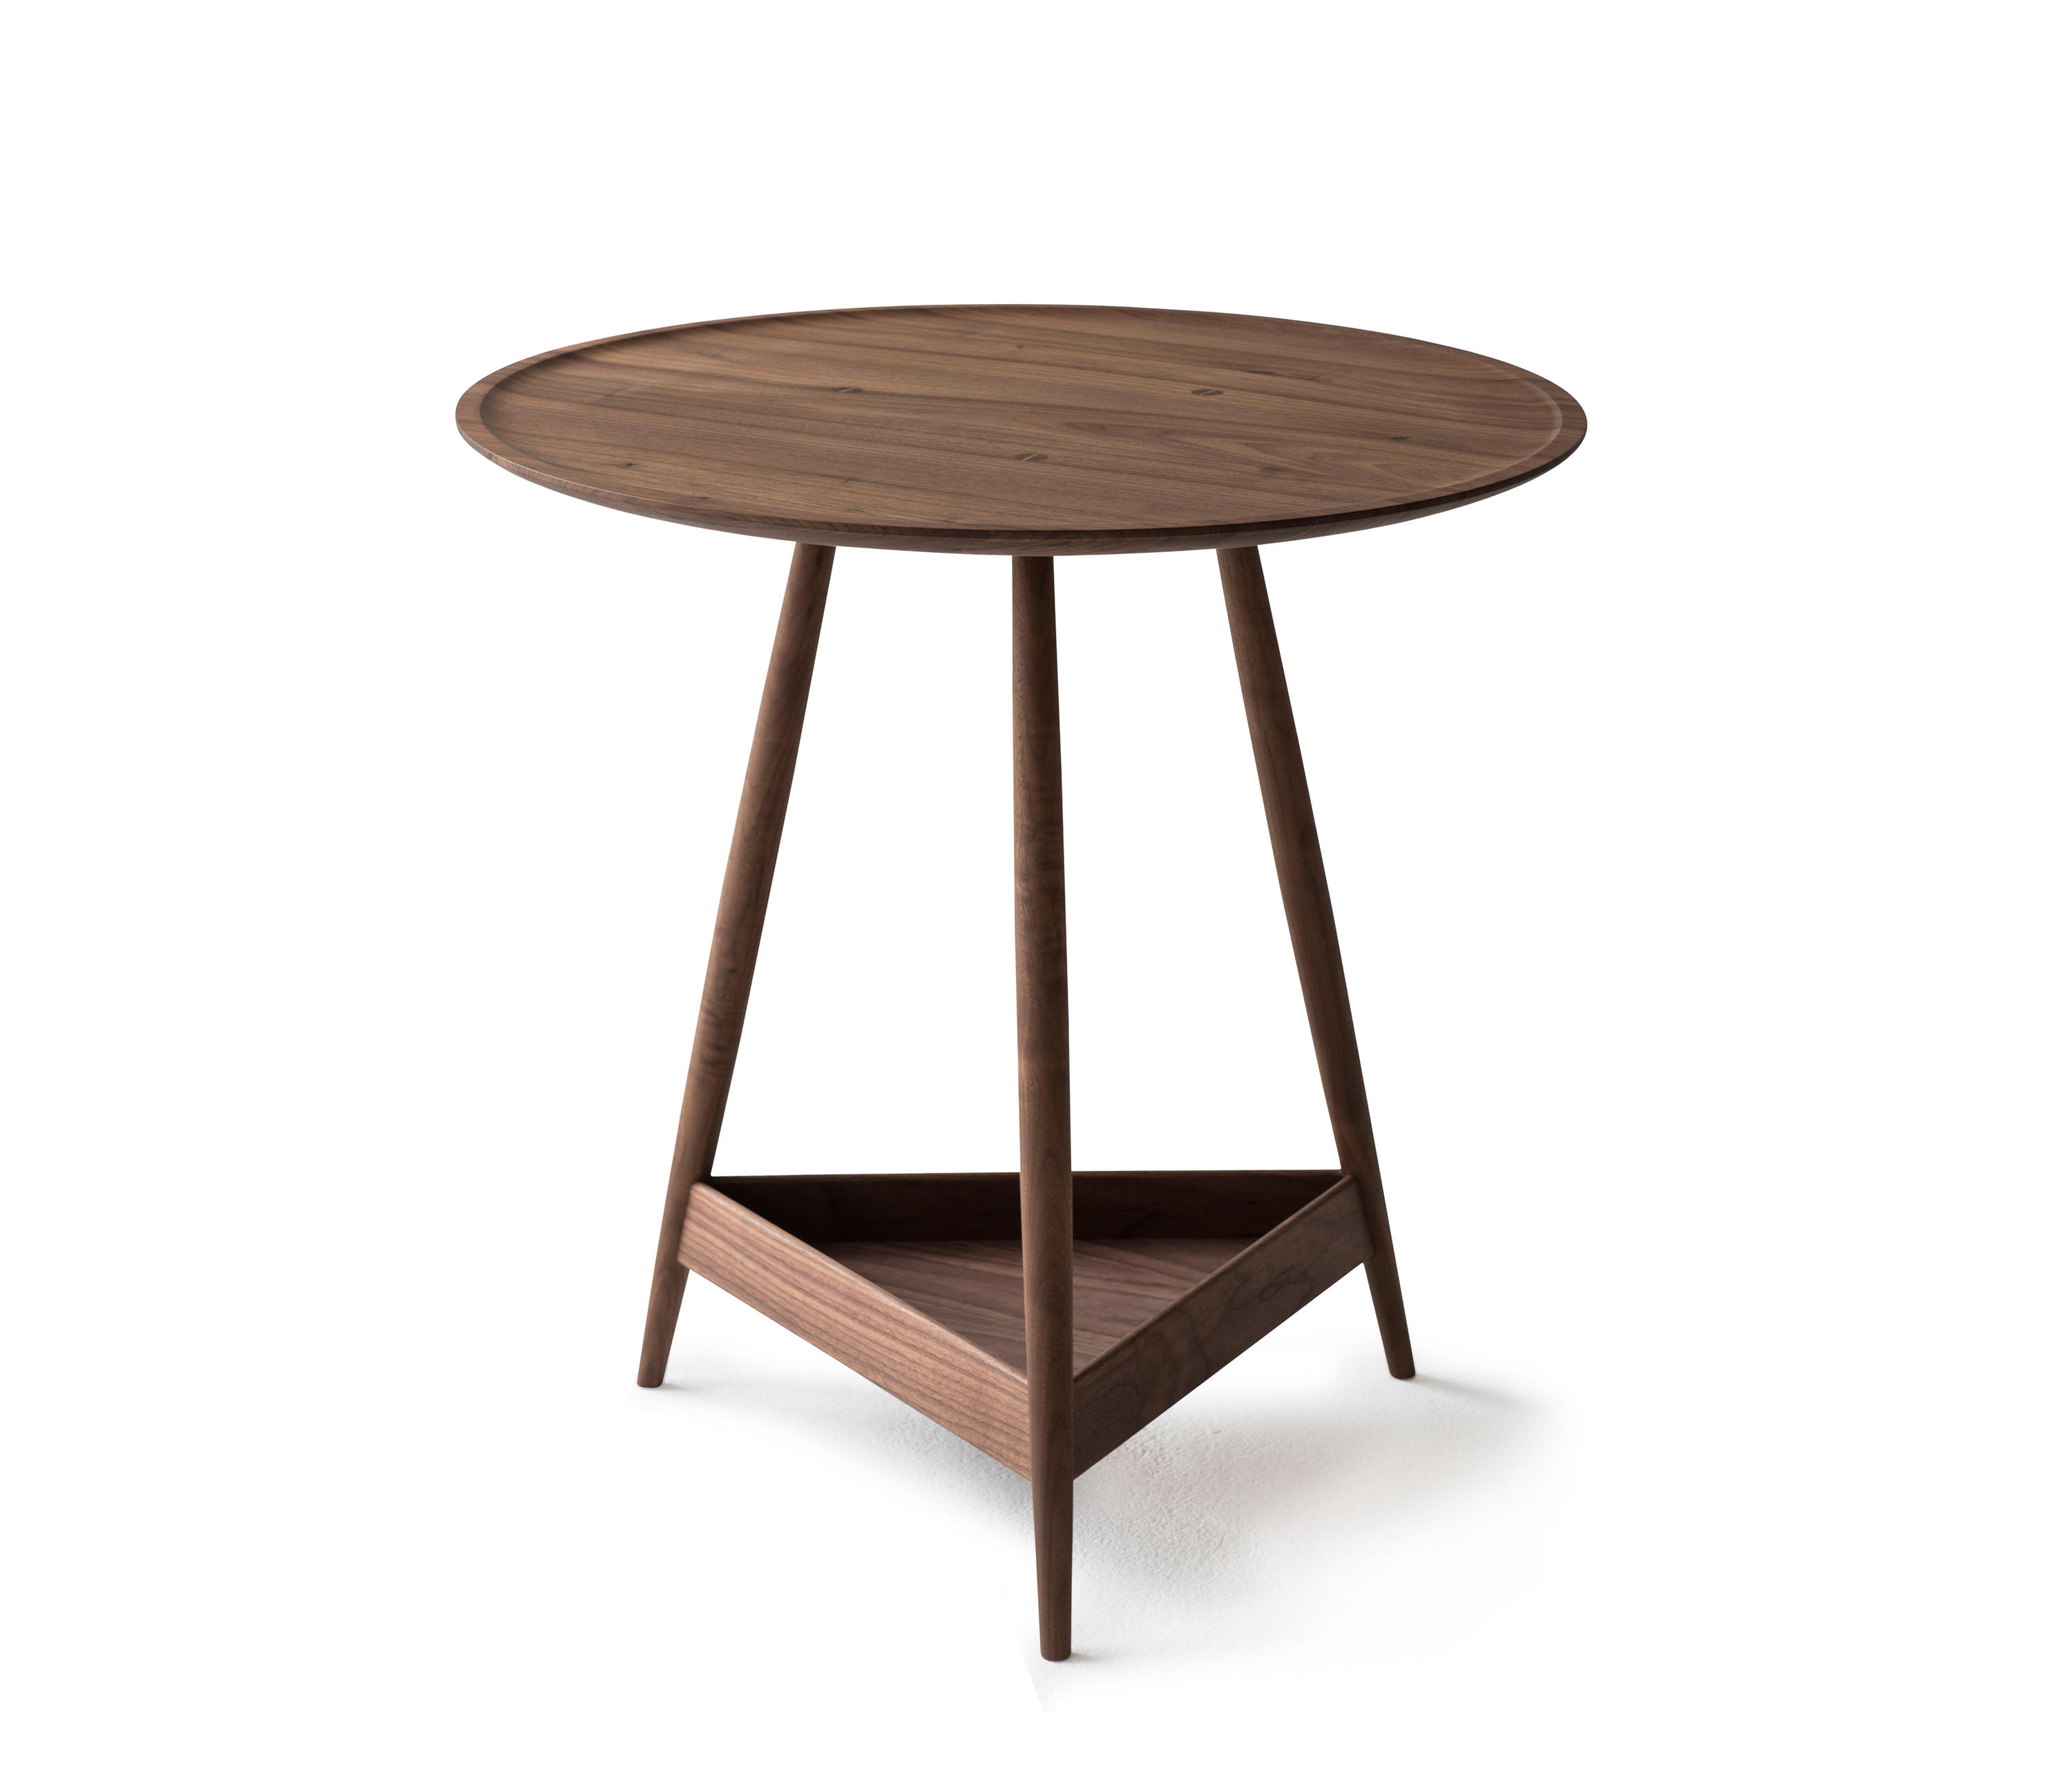 CLYDE LAMP TABLE Side tables from Pinch